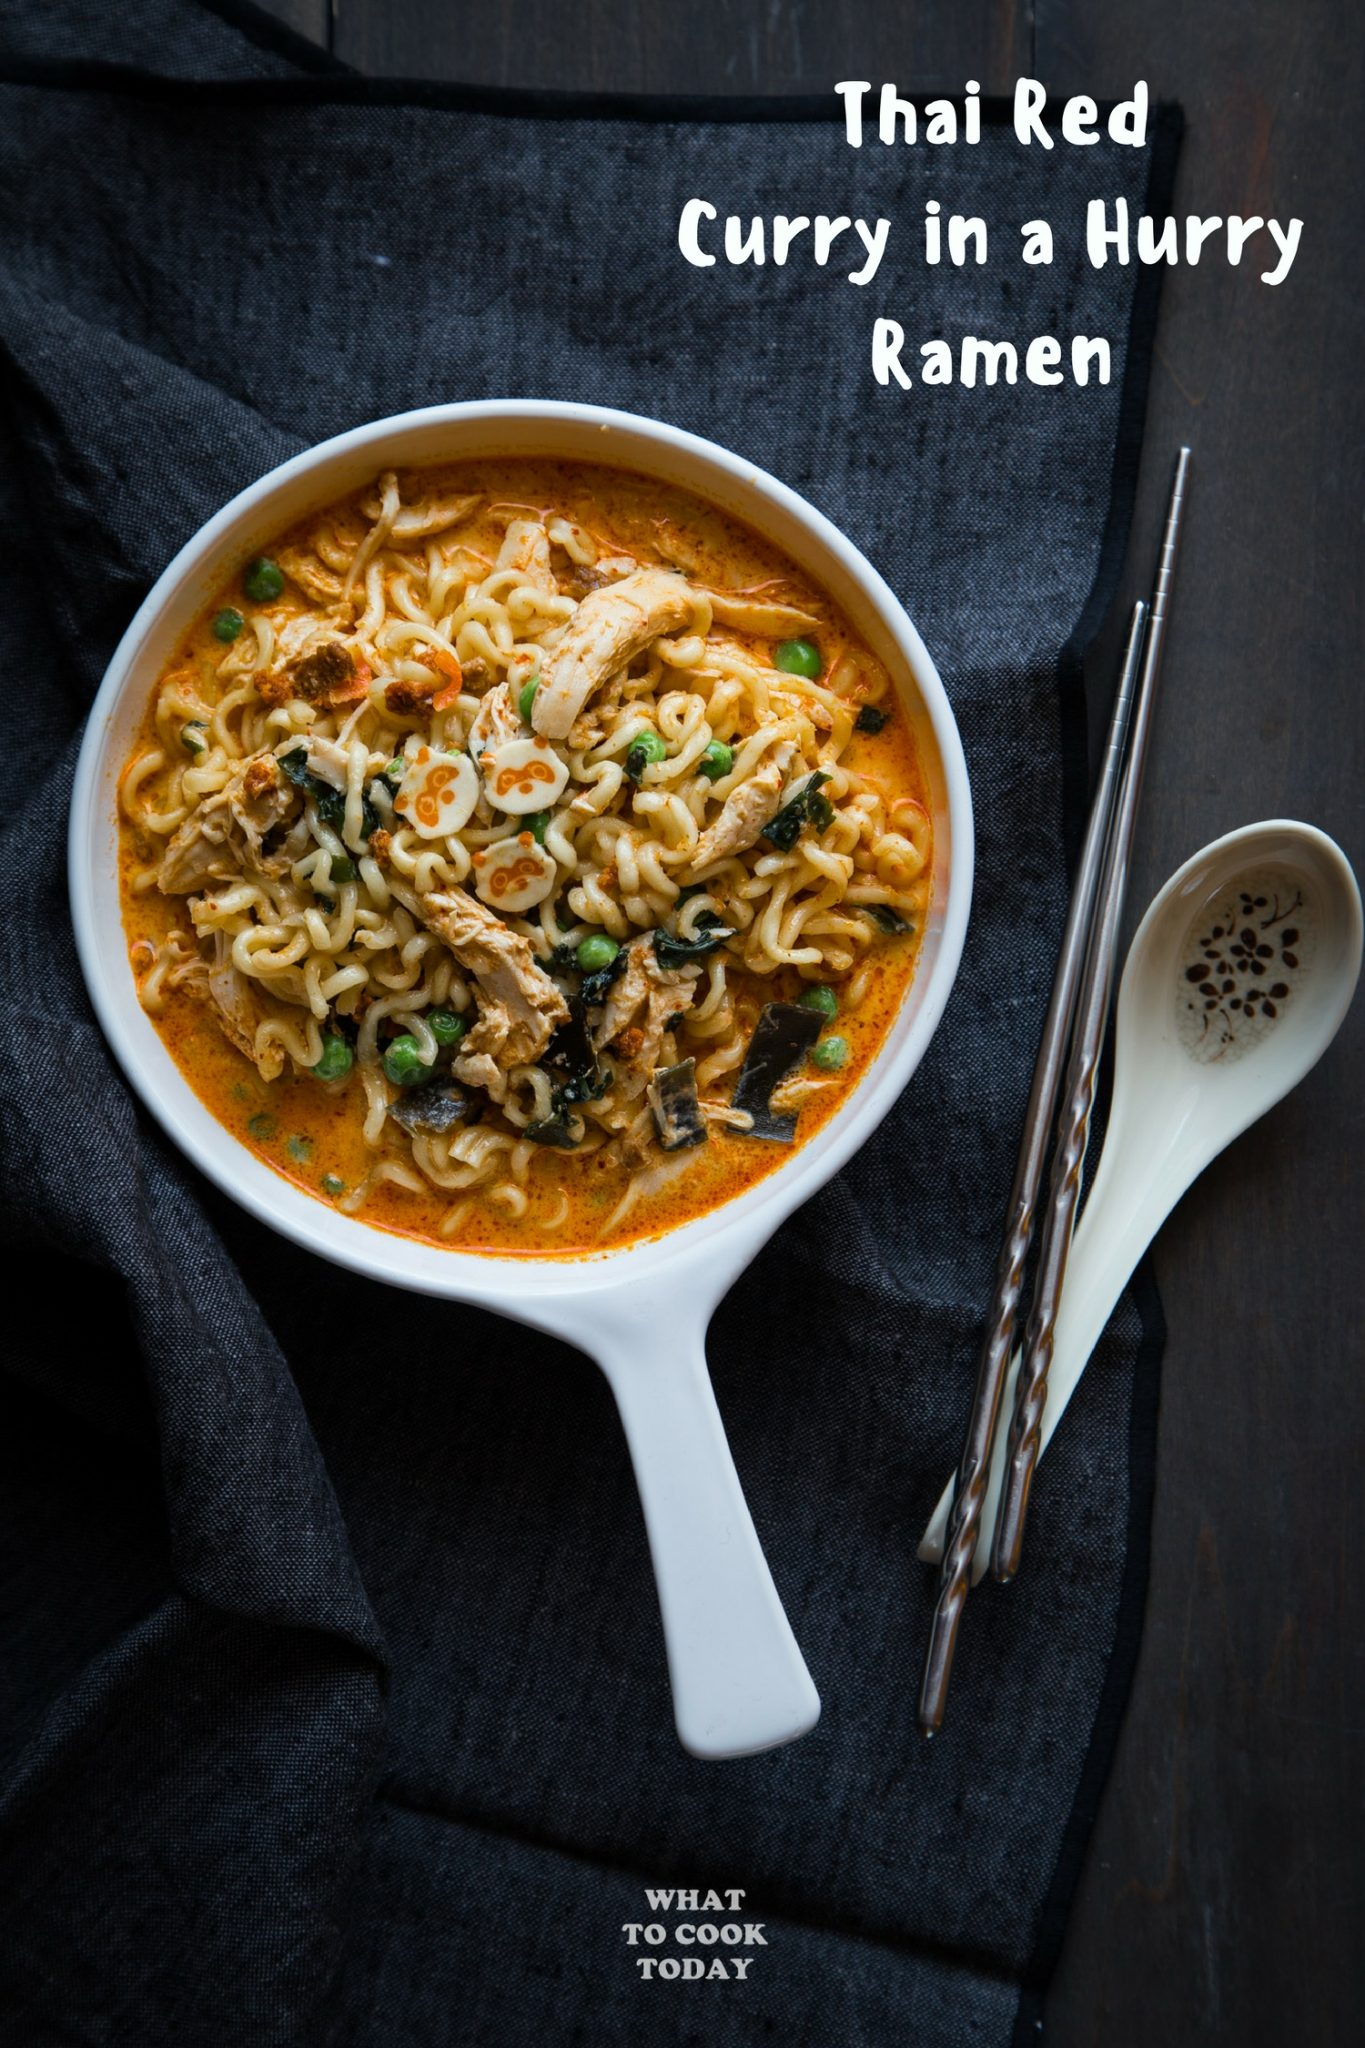 Thai Red Curry in a Hurry Ramen #ramen #curry #easyrecipes #noodles